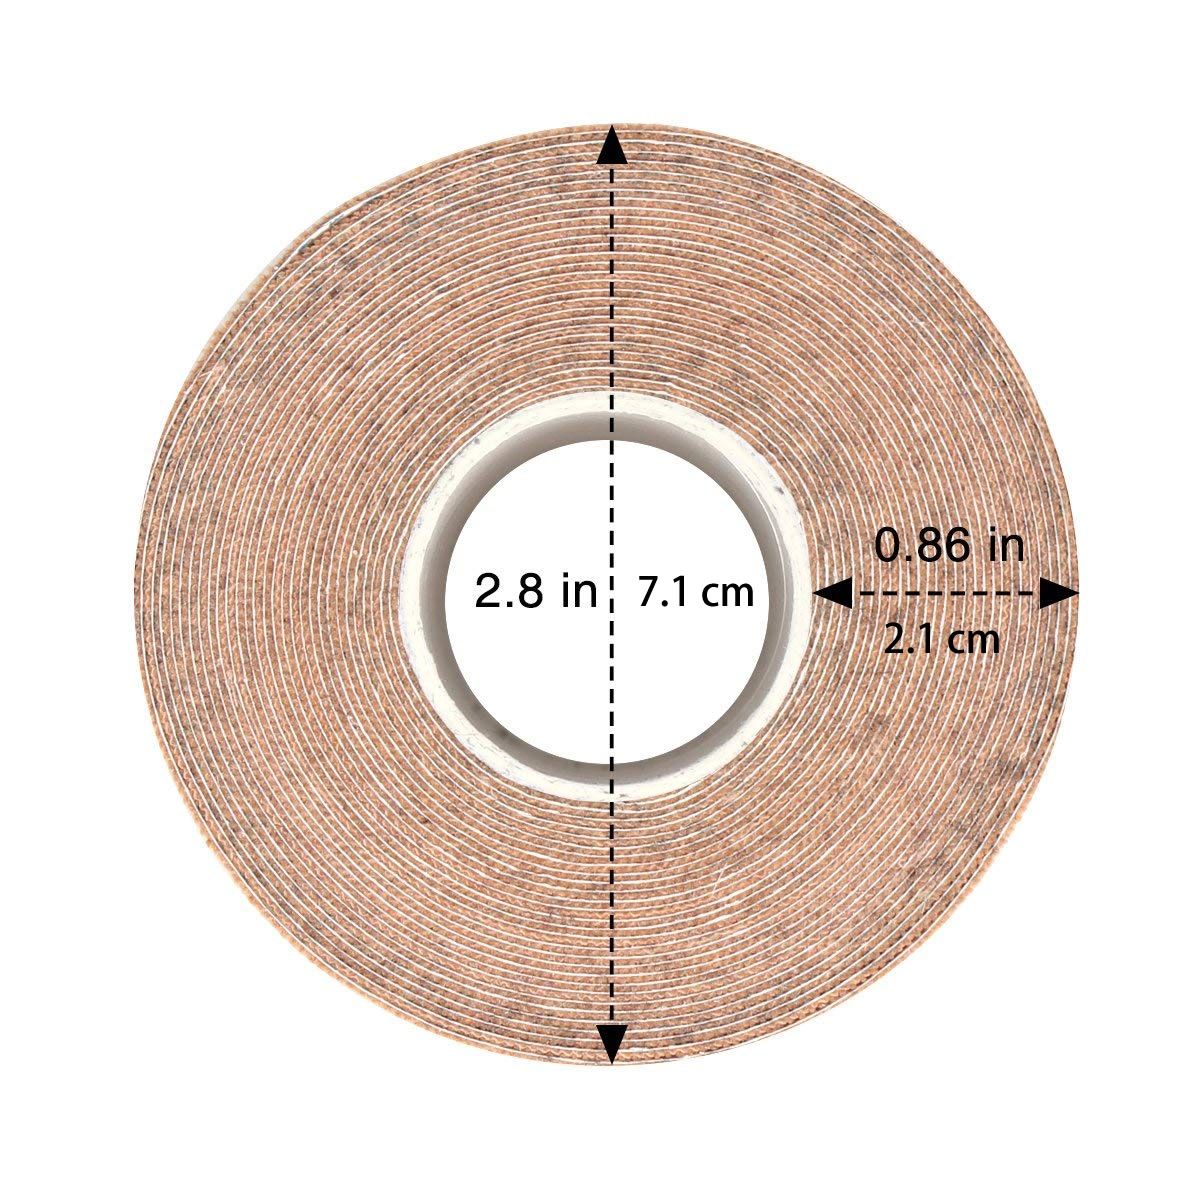 5cm*5m Kinesiology Tape Sports Reduce Pain Injury Recovery,Athletic Tape Gym Fitness Tennis Running Knee Muscle Wrap Protector 5